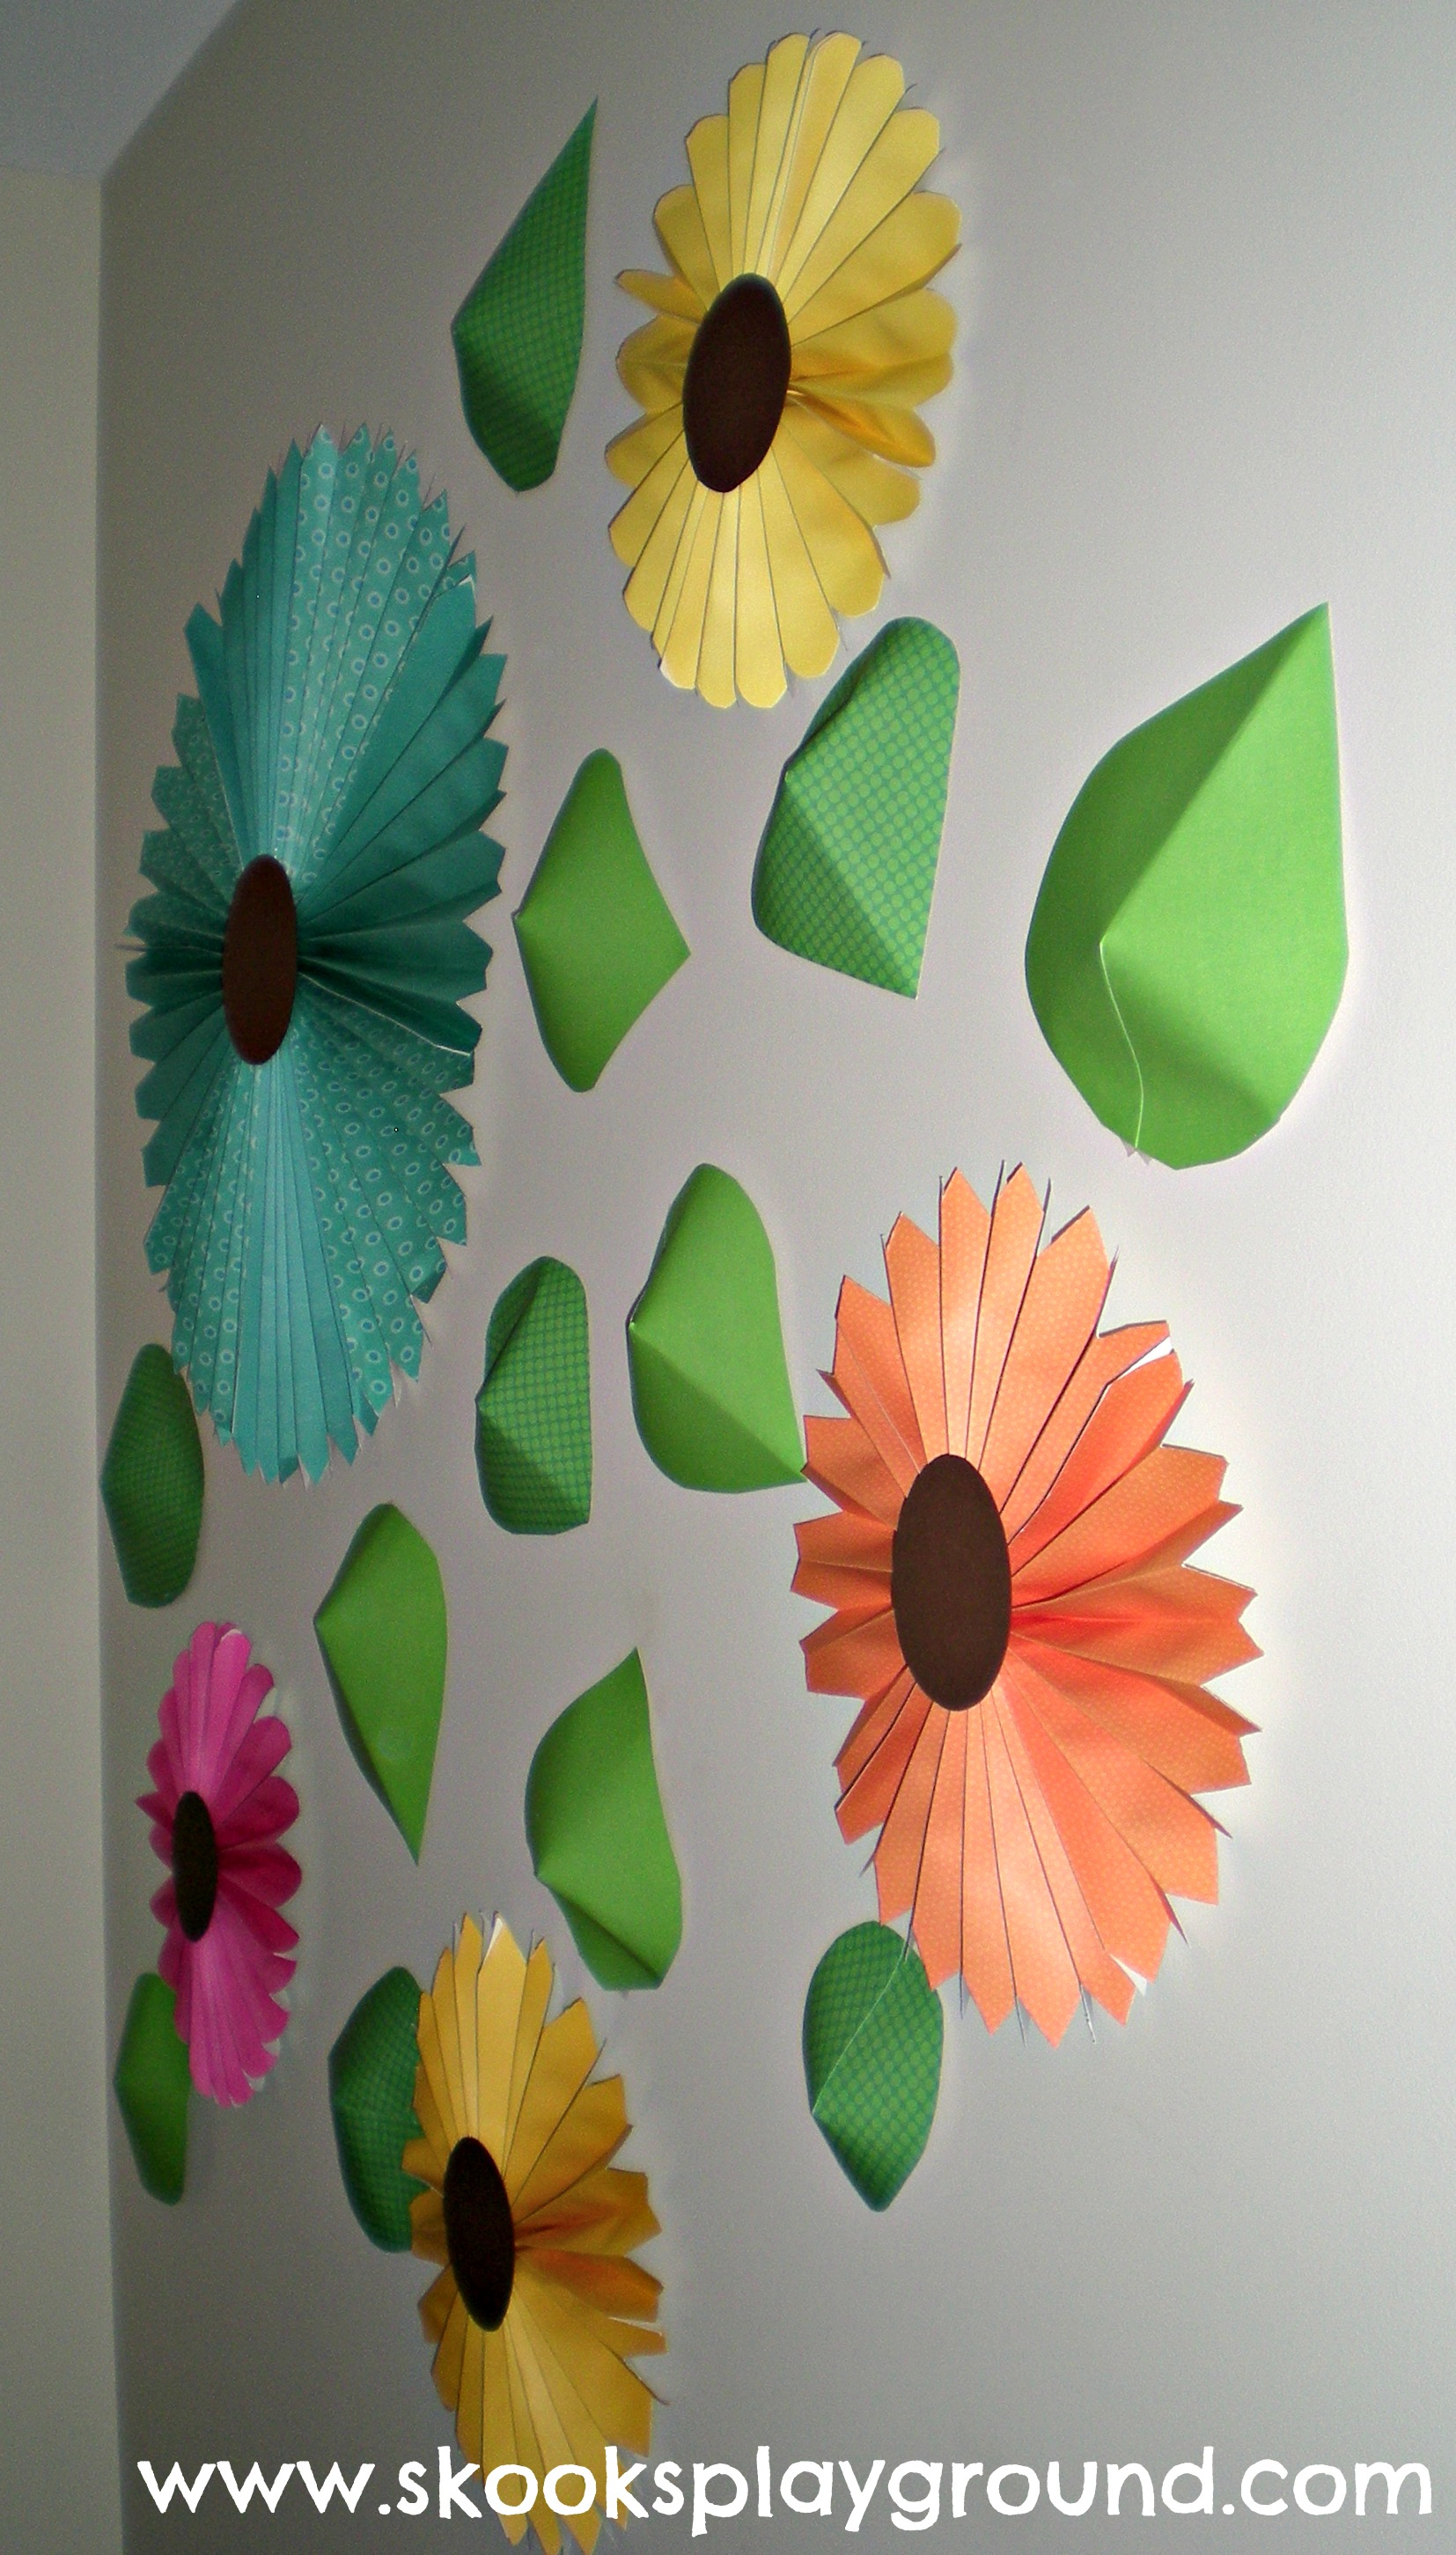 Accordian Wall Flowers - Side View